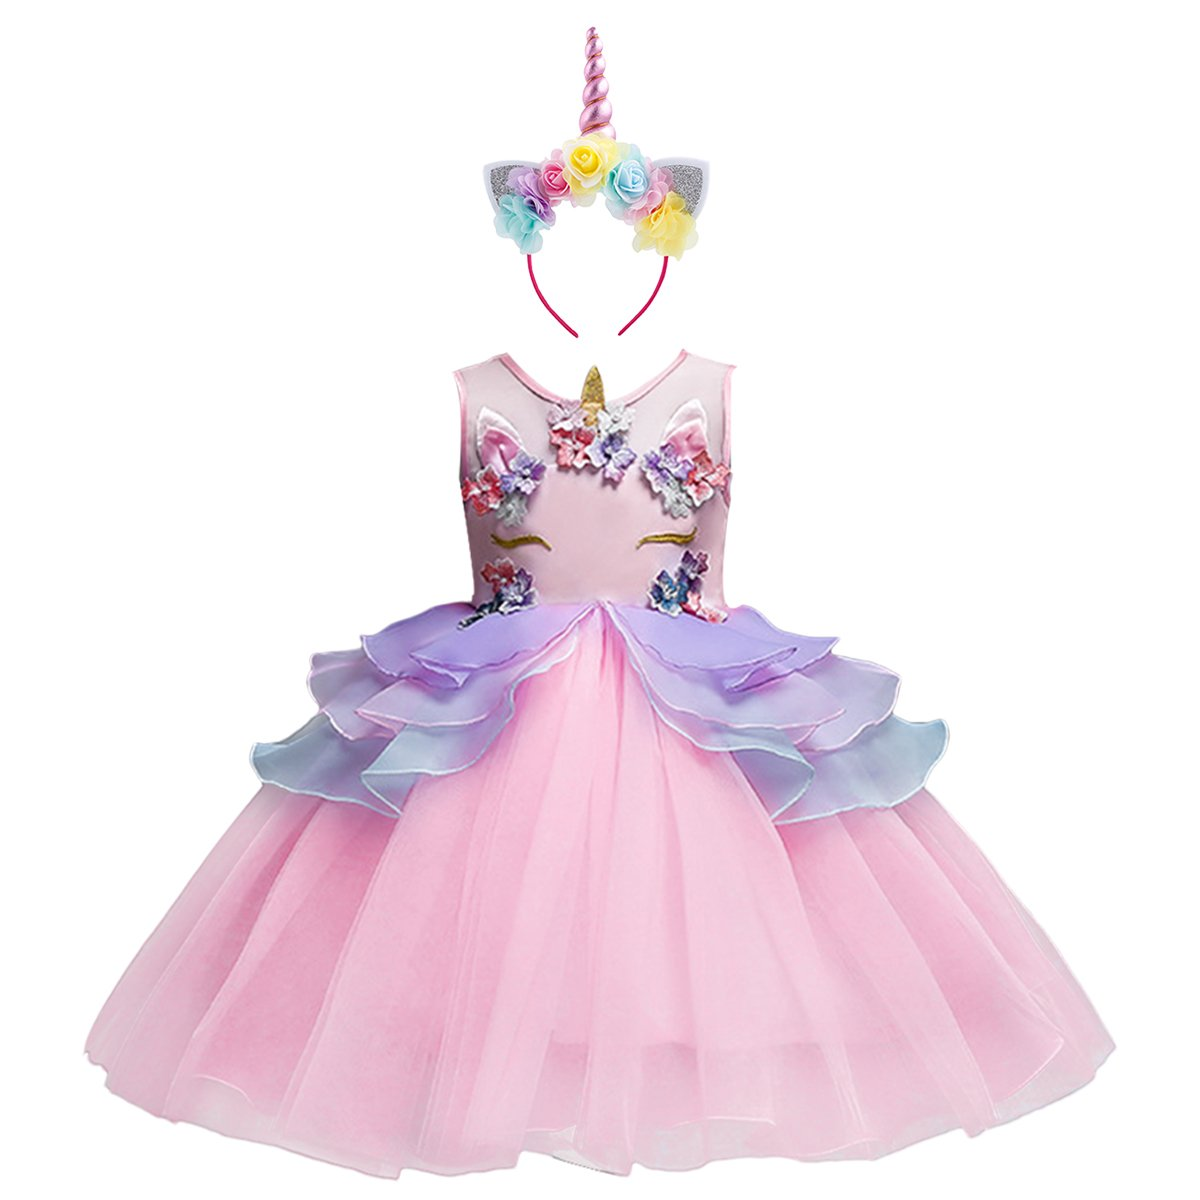 Girls Unicorn Dress up Costume Princess Dressing Gown Tutu Skirt Headband Birthday Party Outfits for Kids Pageant Wedding Casual Photography Pink 7-8 Years